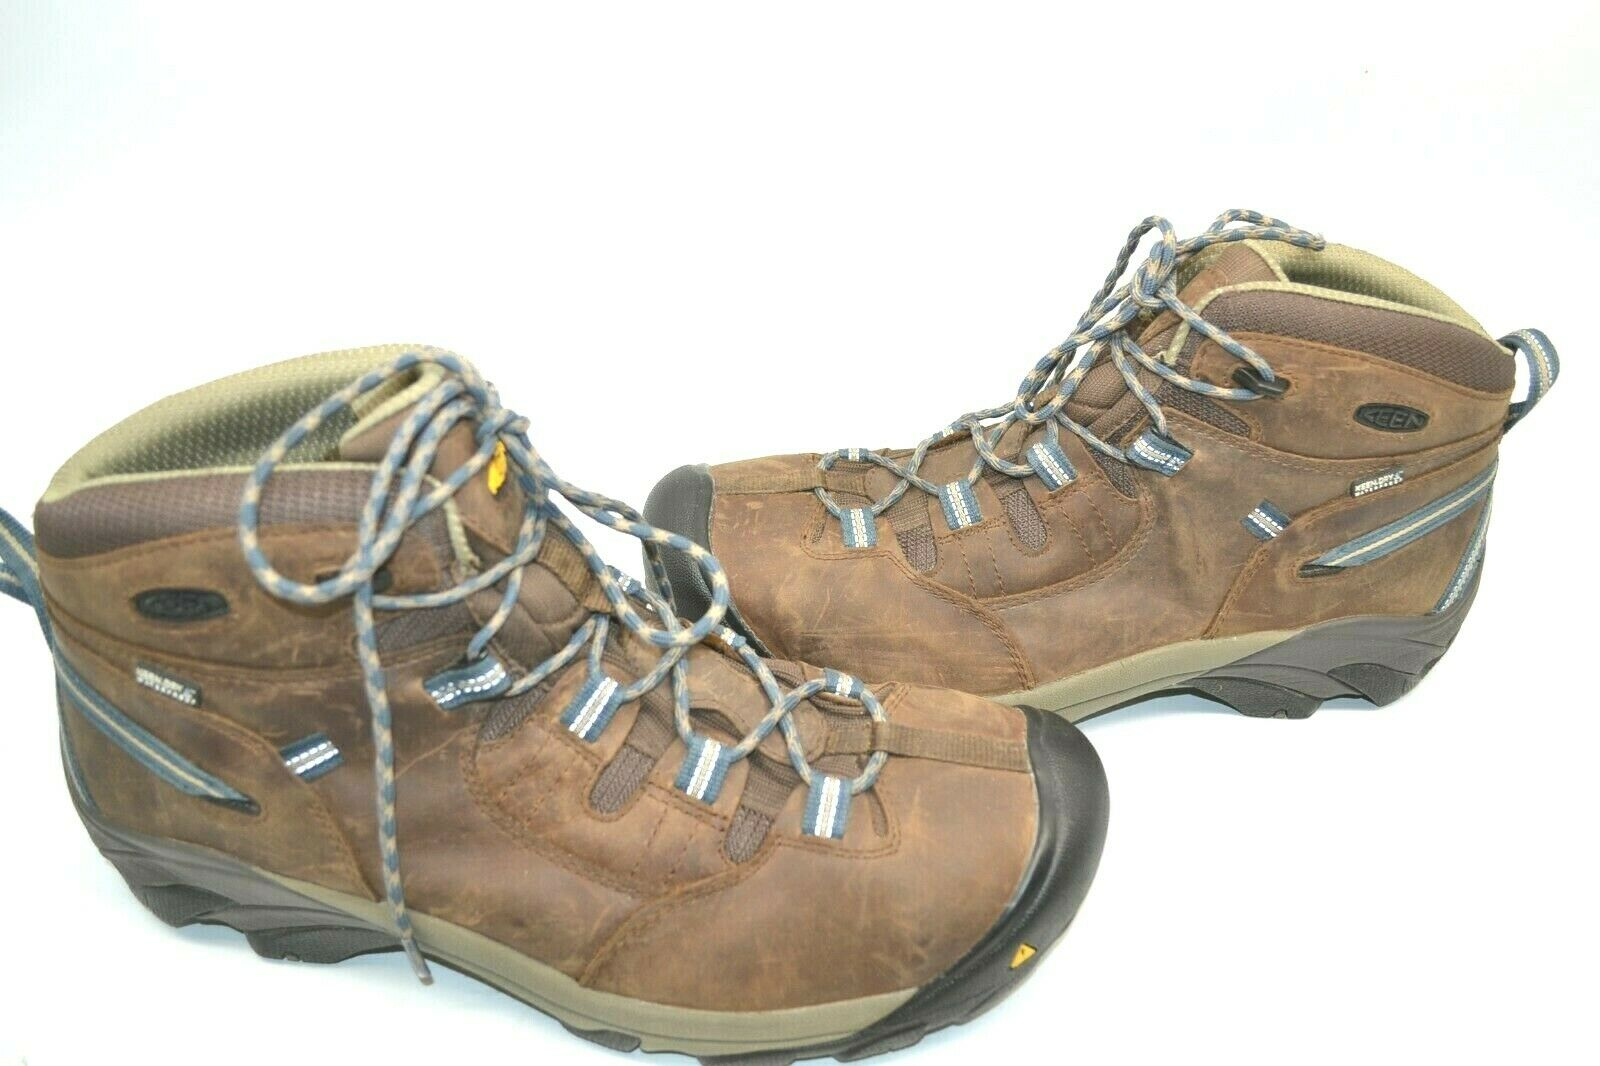 KEEN 1007004 MEN'S DETROIT MID BROWN LEATHER STEEL TOE WORK HIKING BOOTS 14 D